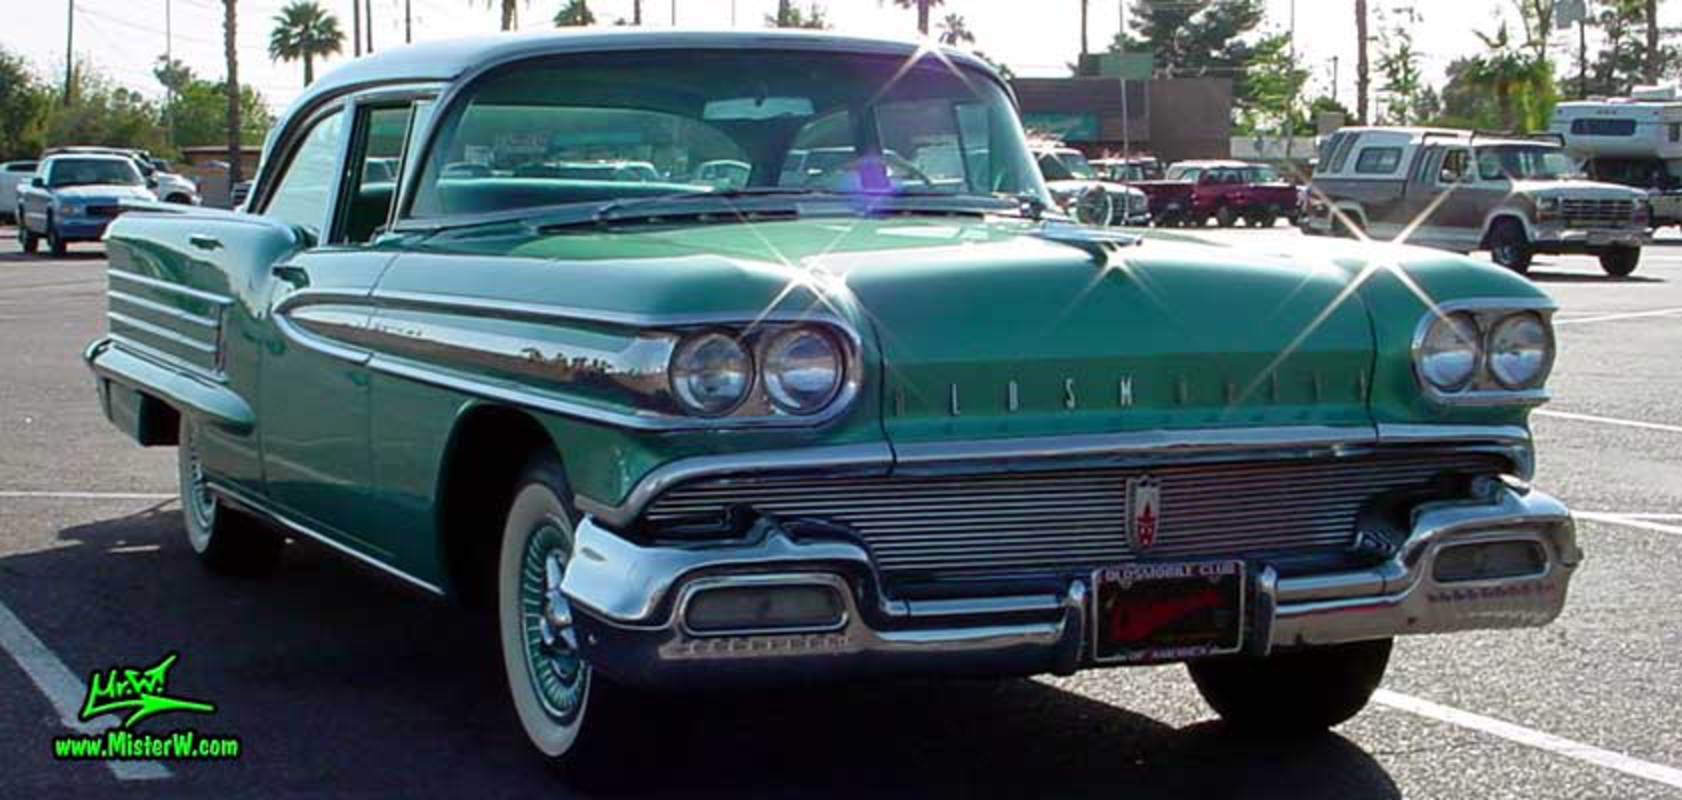 Oldsmobile 98 Sedan. View Download Wallpaper. 841x400. Comments